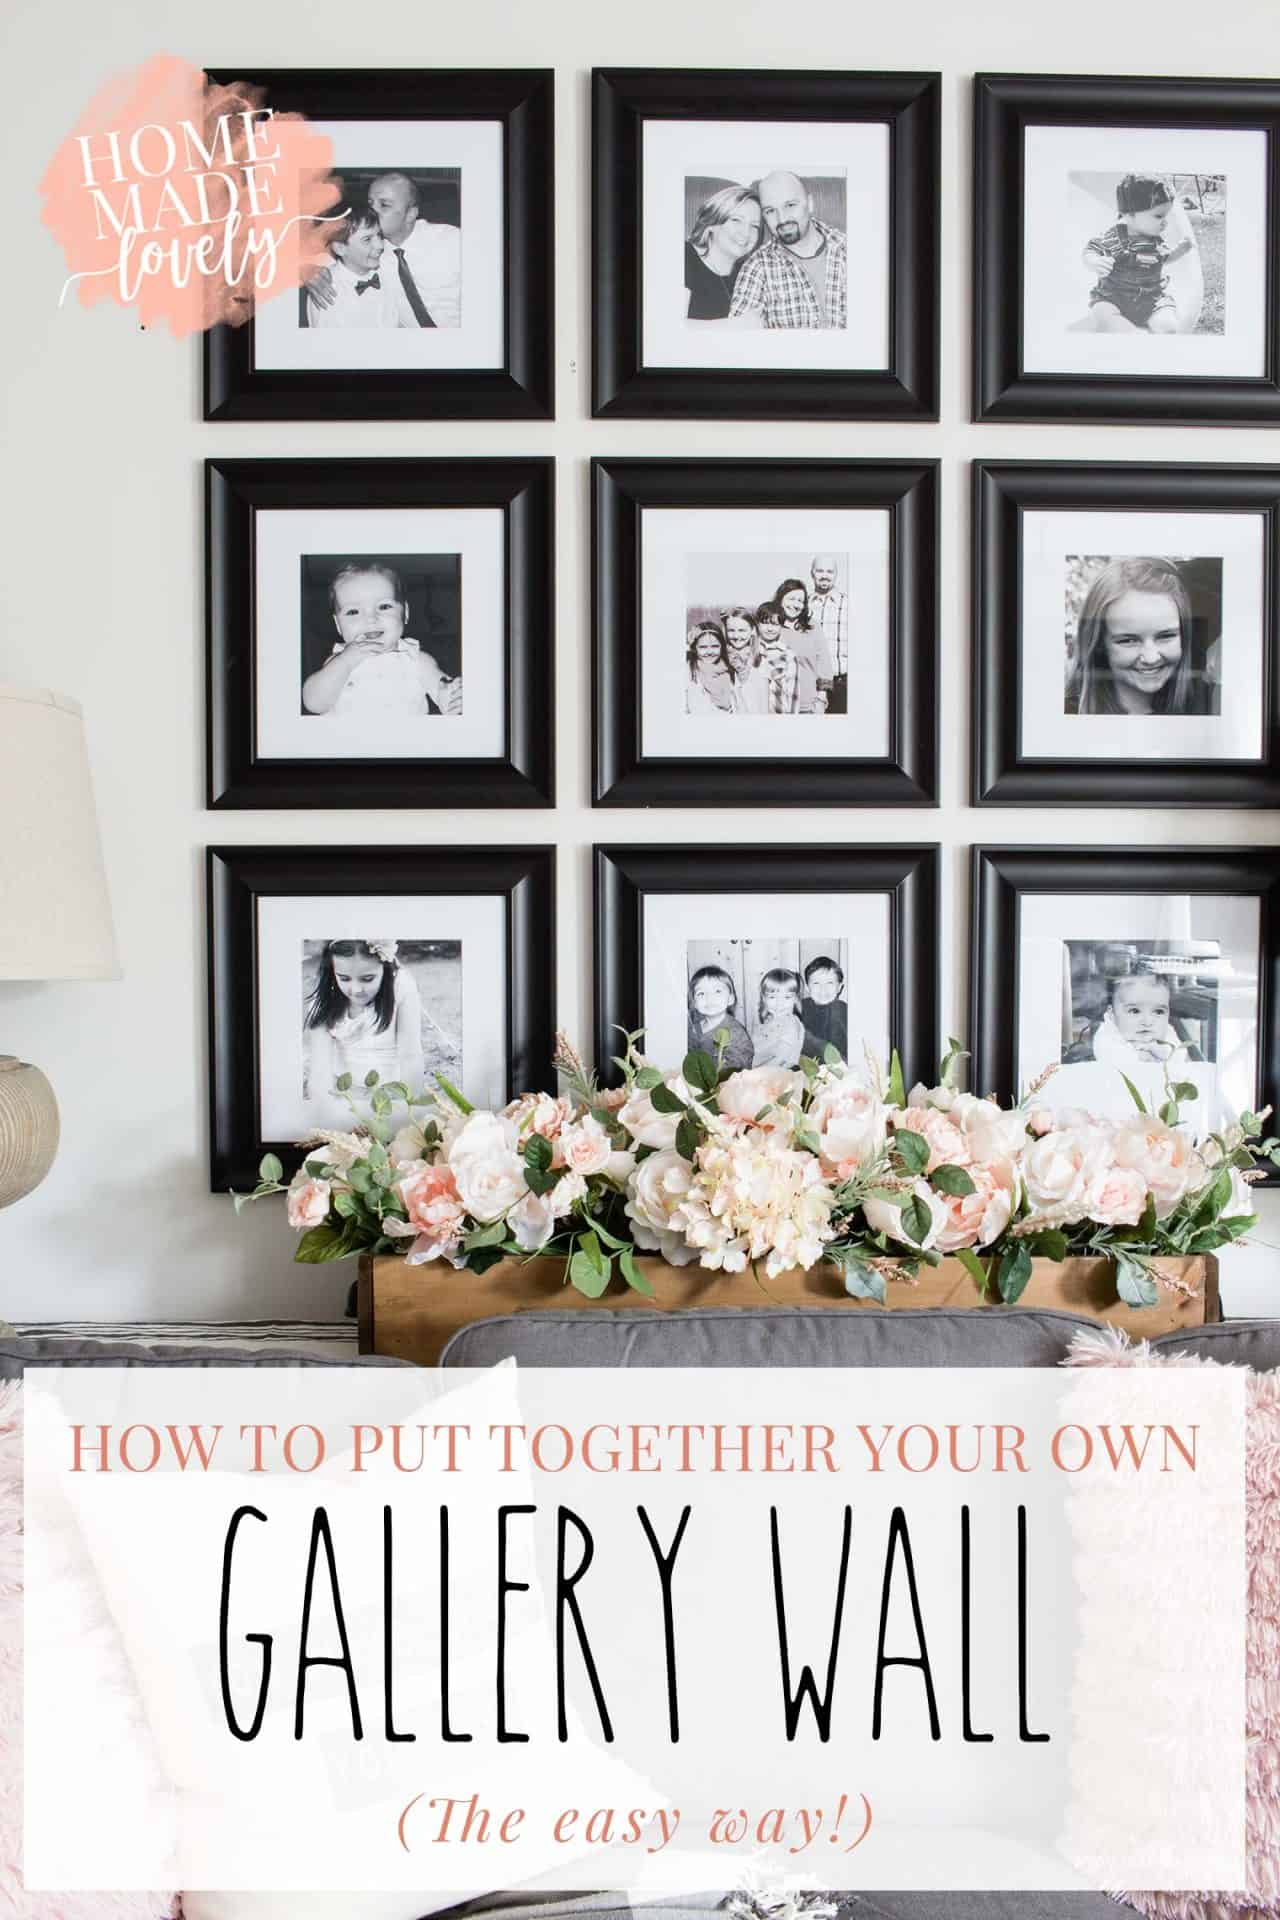 So you want to create a gallery wall somewhere in your home. Here's the quick and easy way to make sure you do it right the first time - without unnecessary holes in the wall!